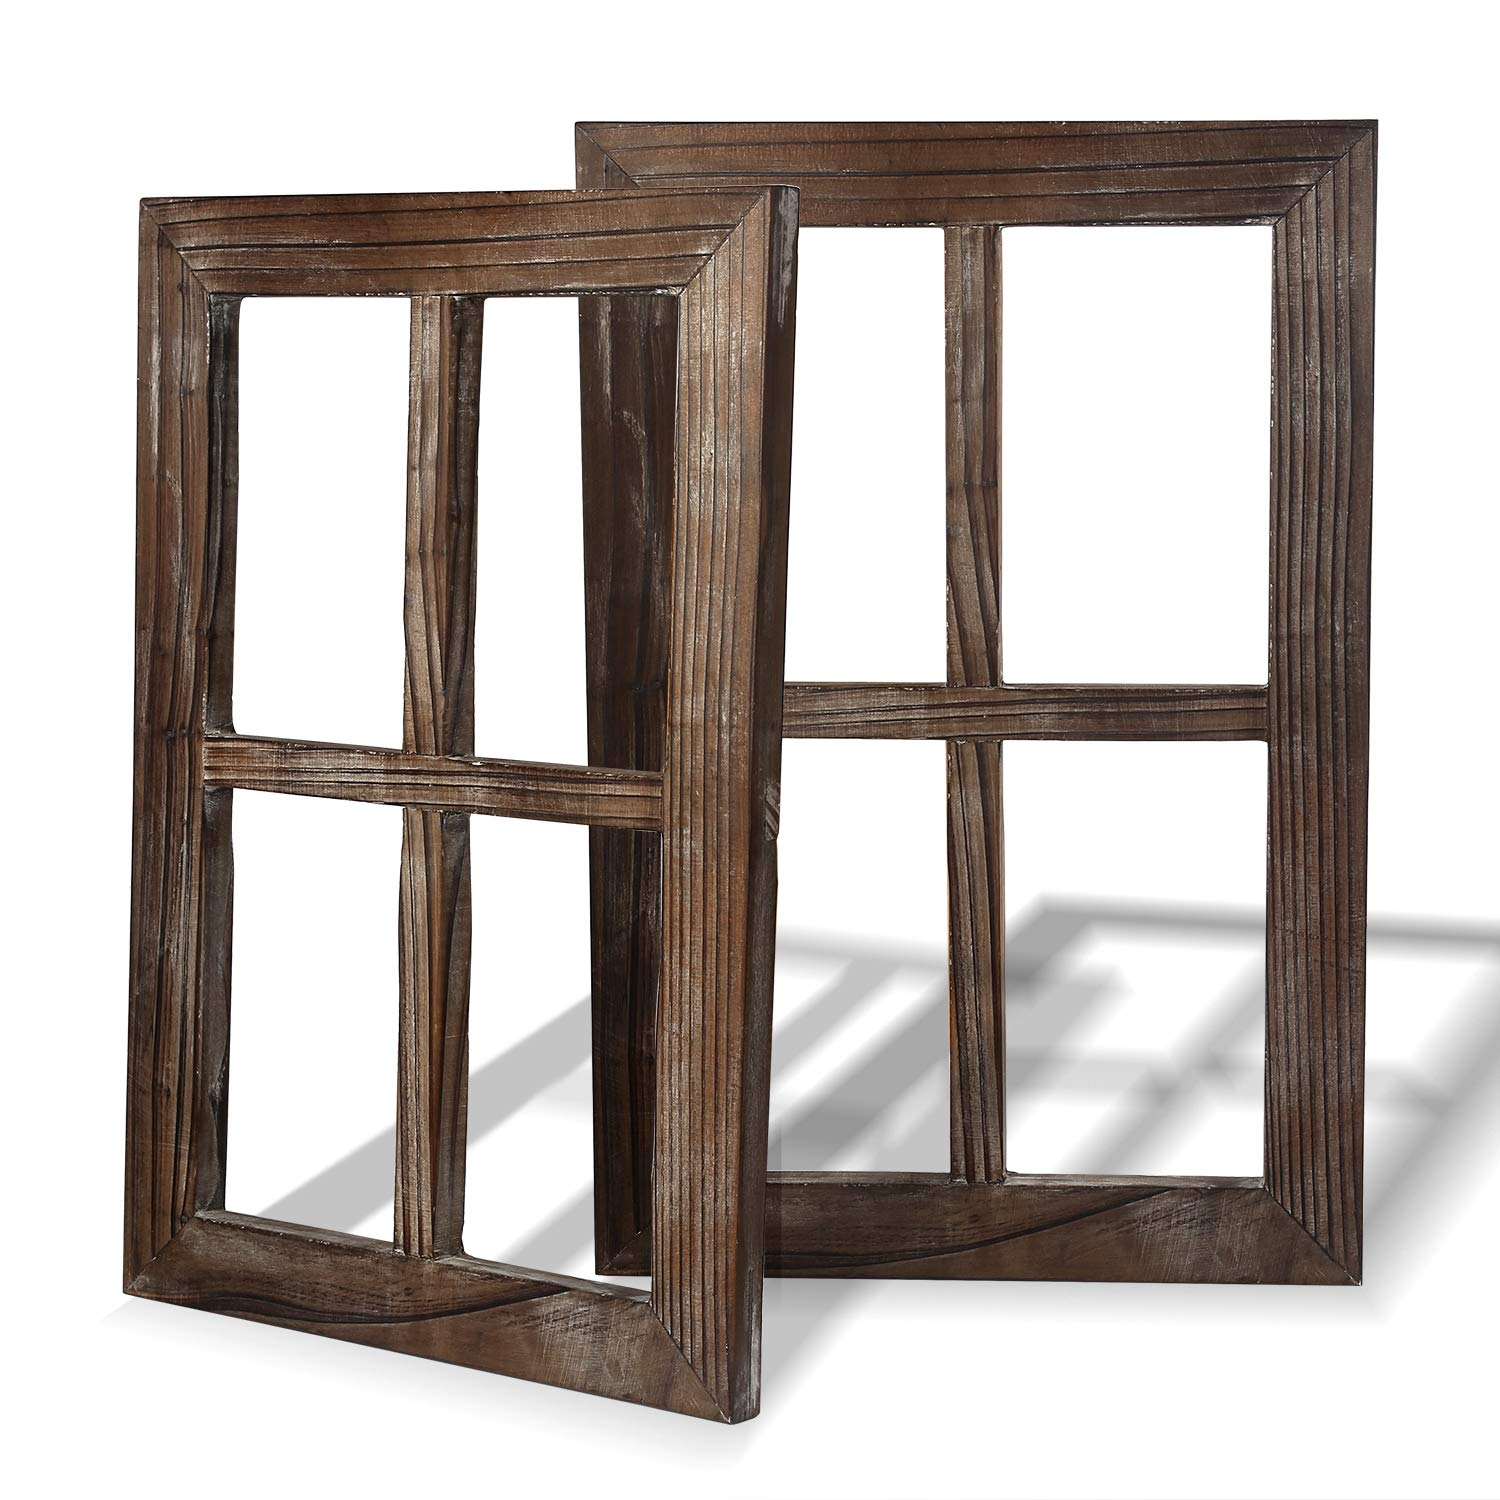 Reclaimed Window Frames For Mirror